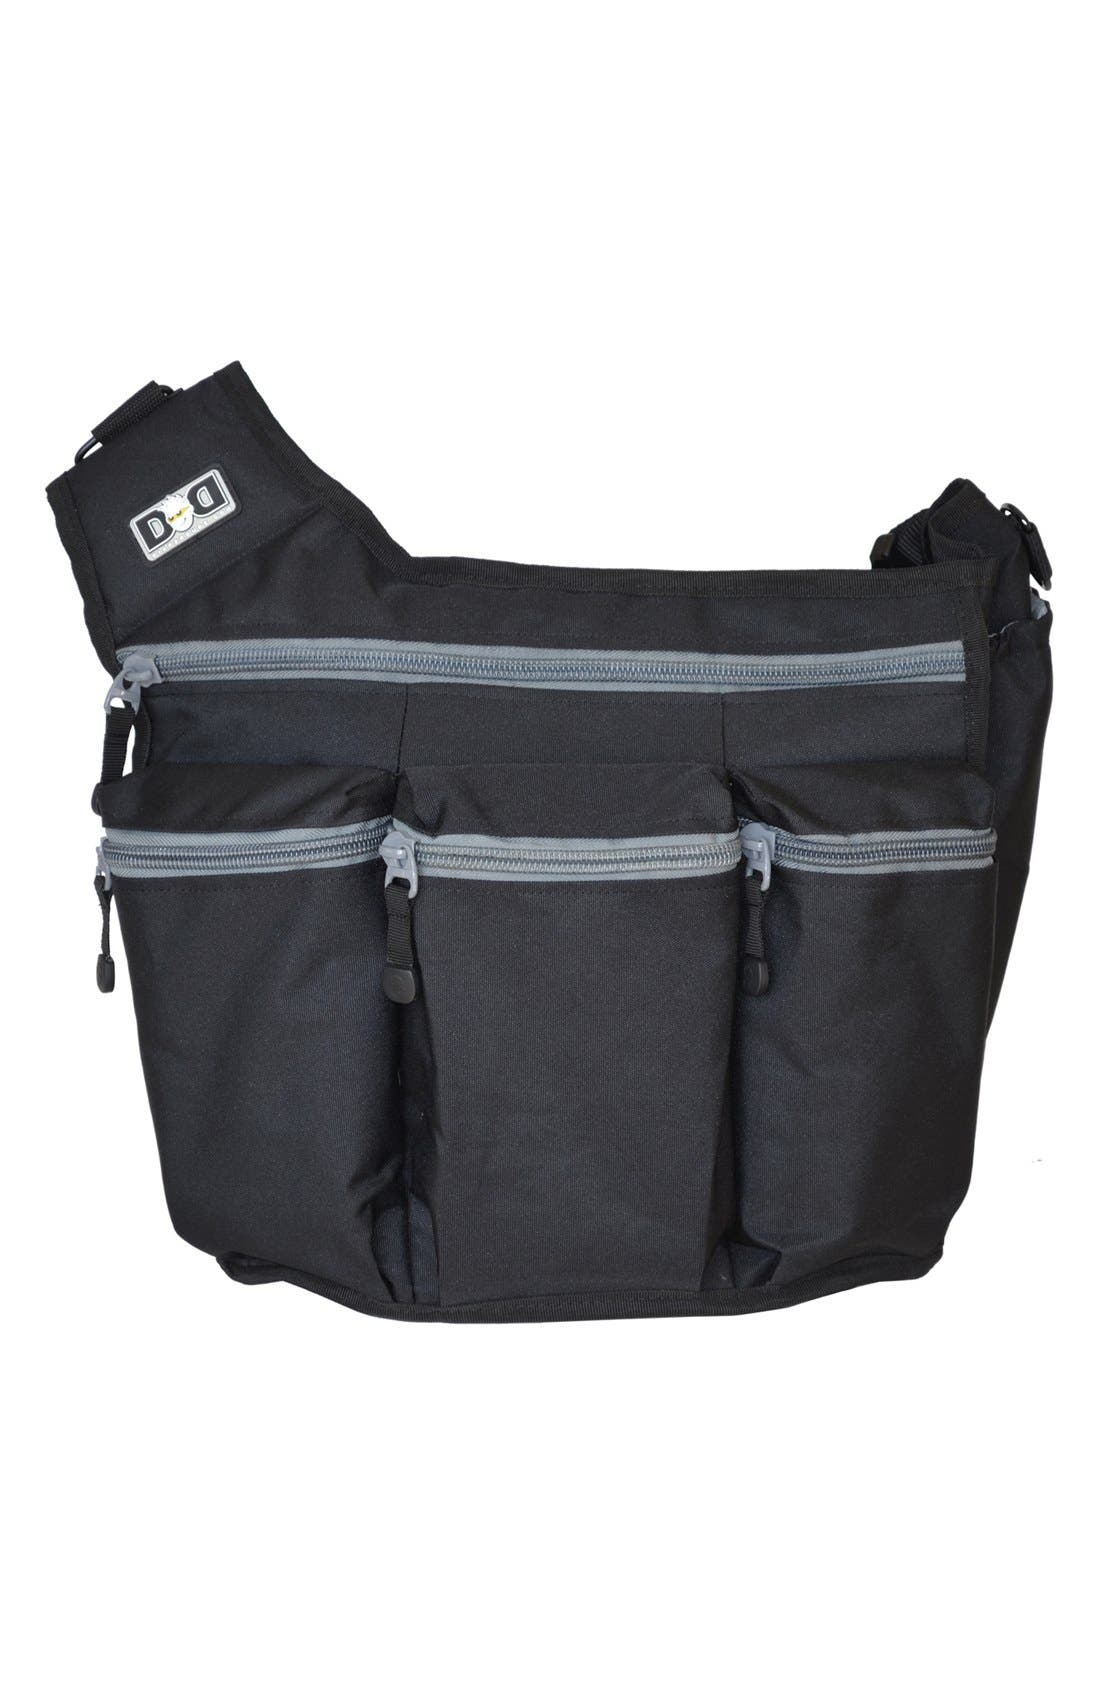 DIAPER DUDE Shoulder Messenger Bag